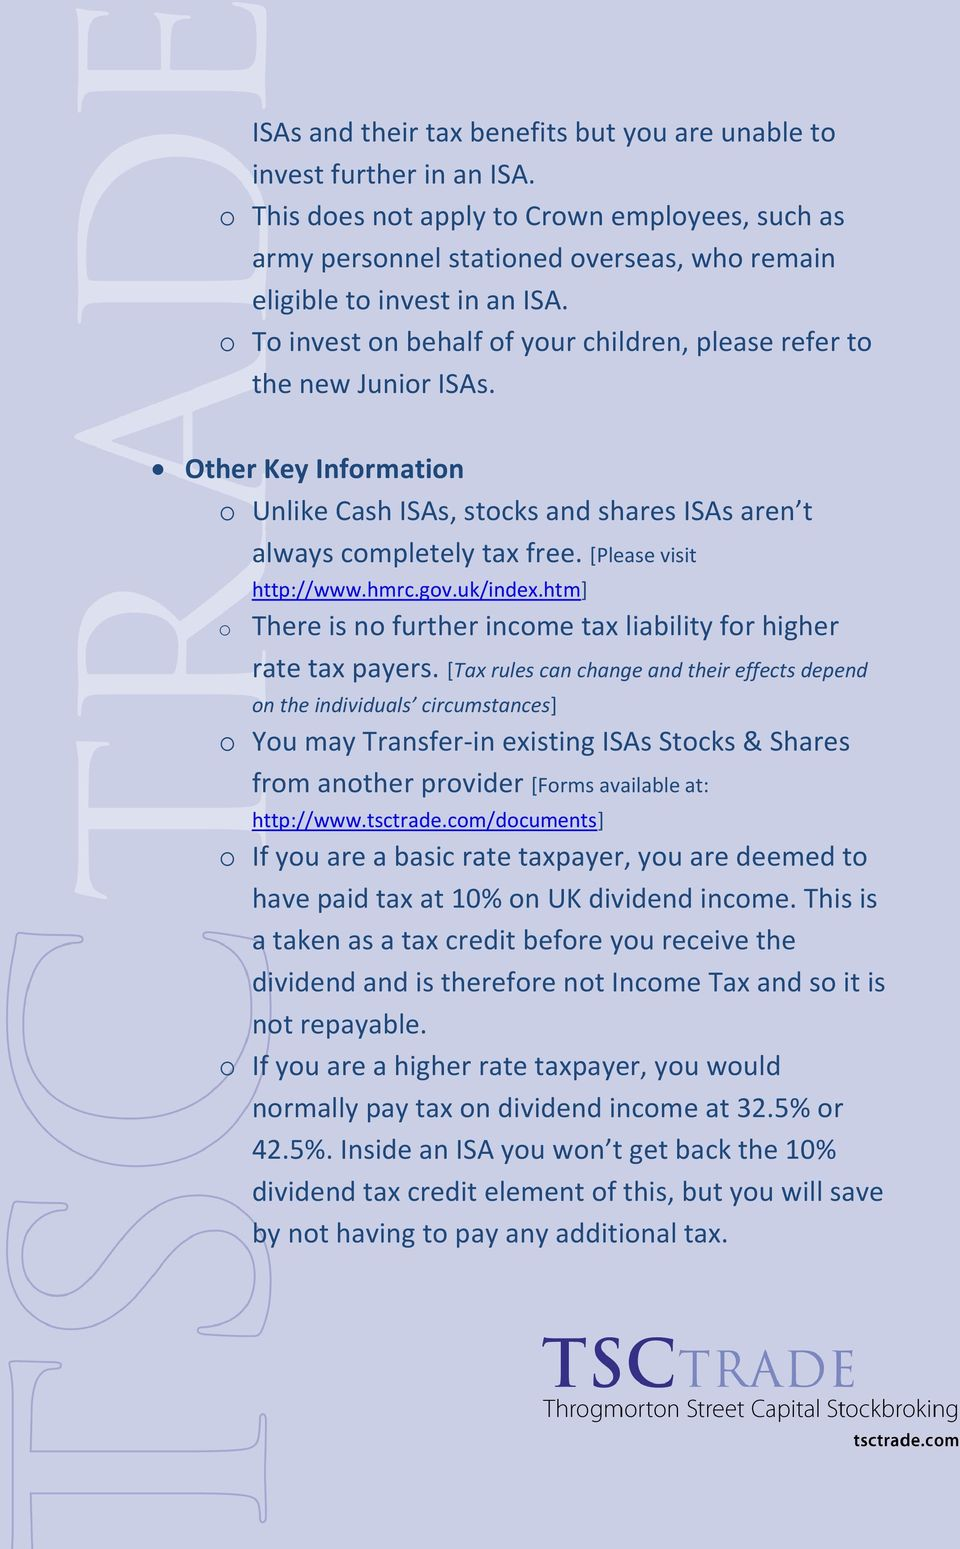 o To invest on behalf of your children, please refer to the new Junior ISAs. Other Key Information o Unlike Cash ISAs, stocks and shares ISAs aren t always completely tax free.